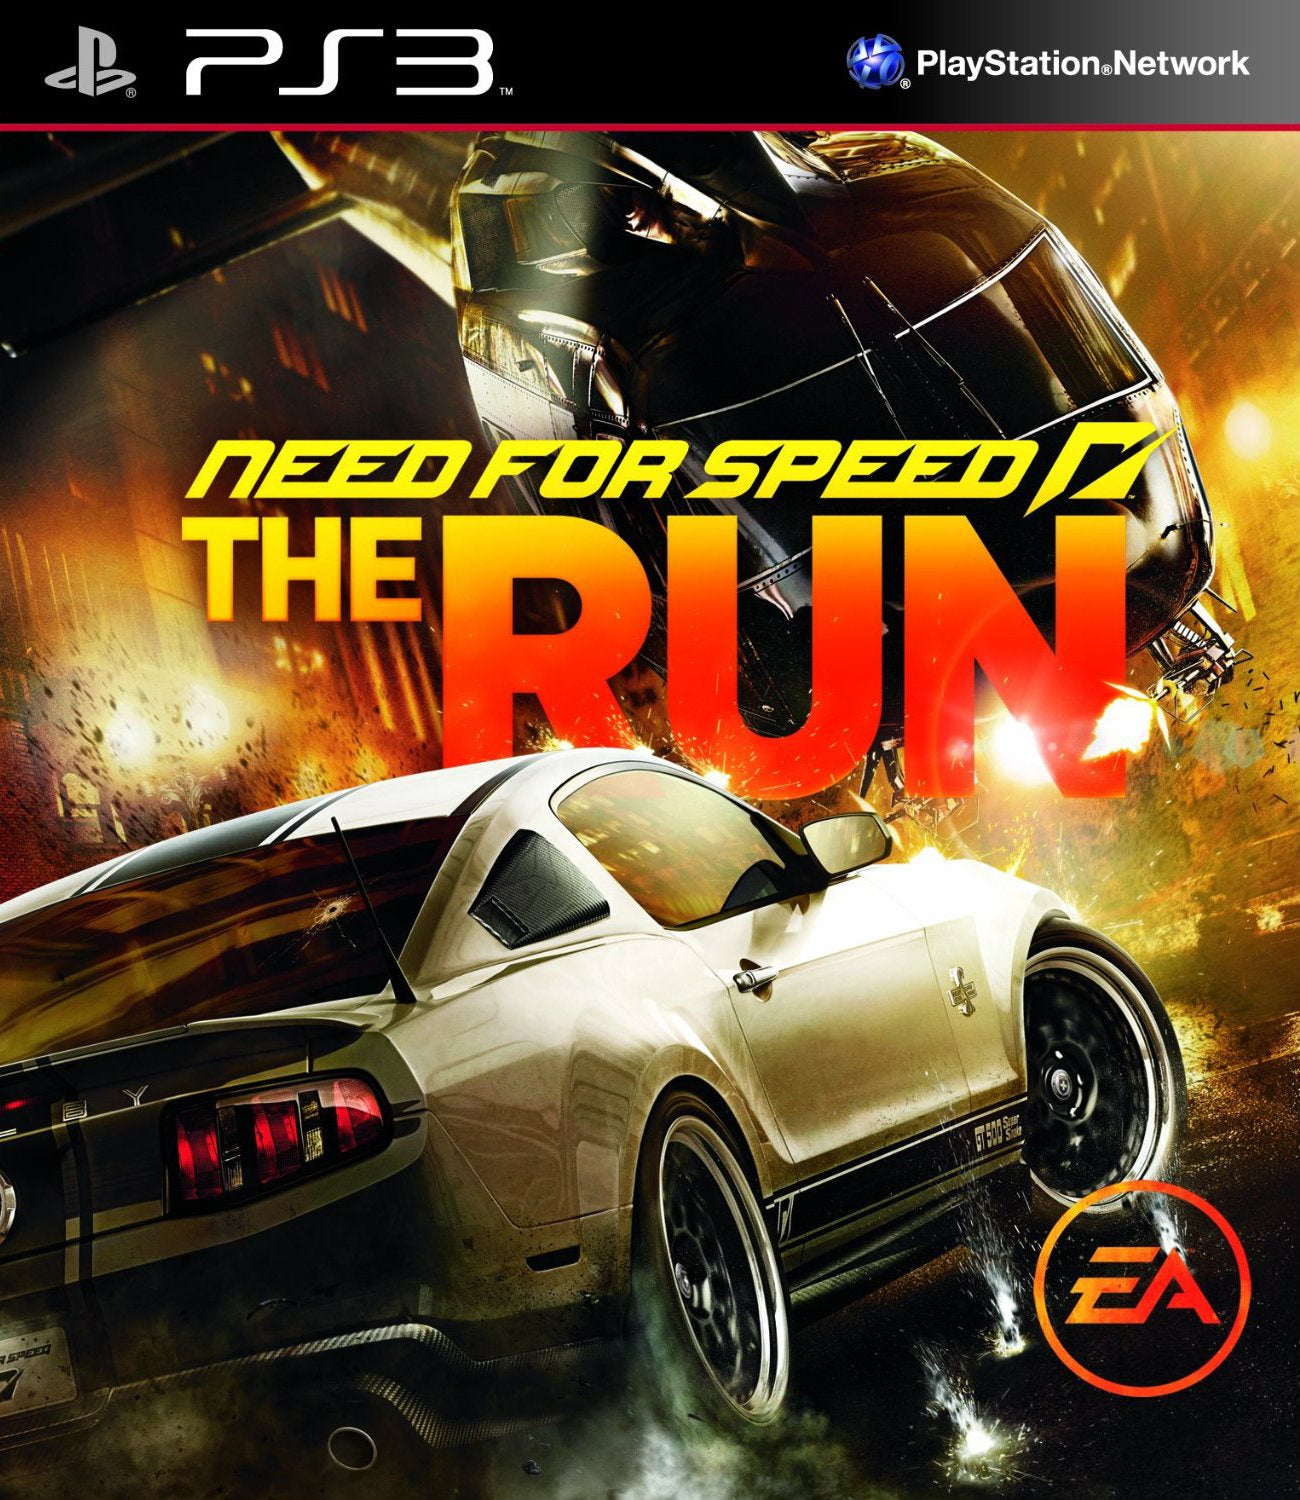 Need For Speed: The Run - PS3 (Pre-owned)